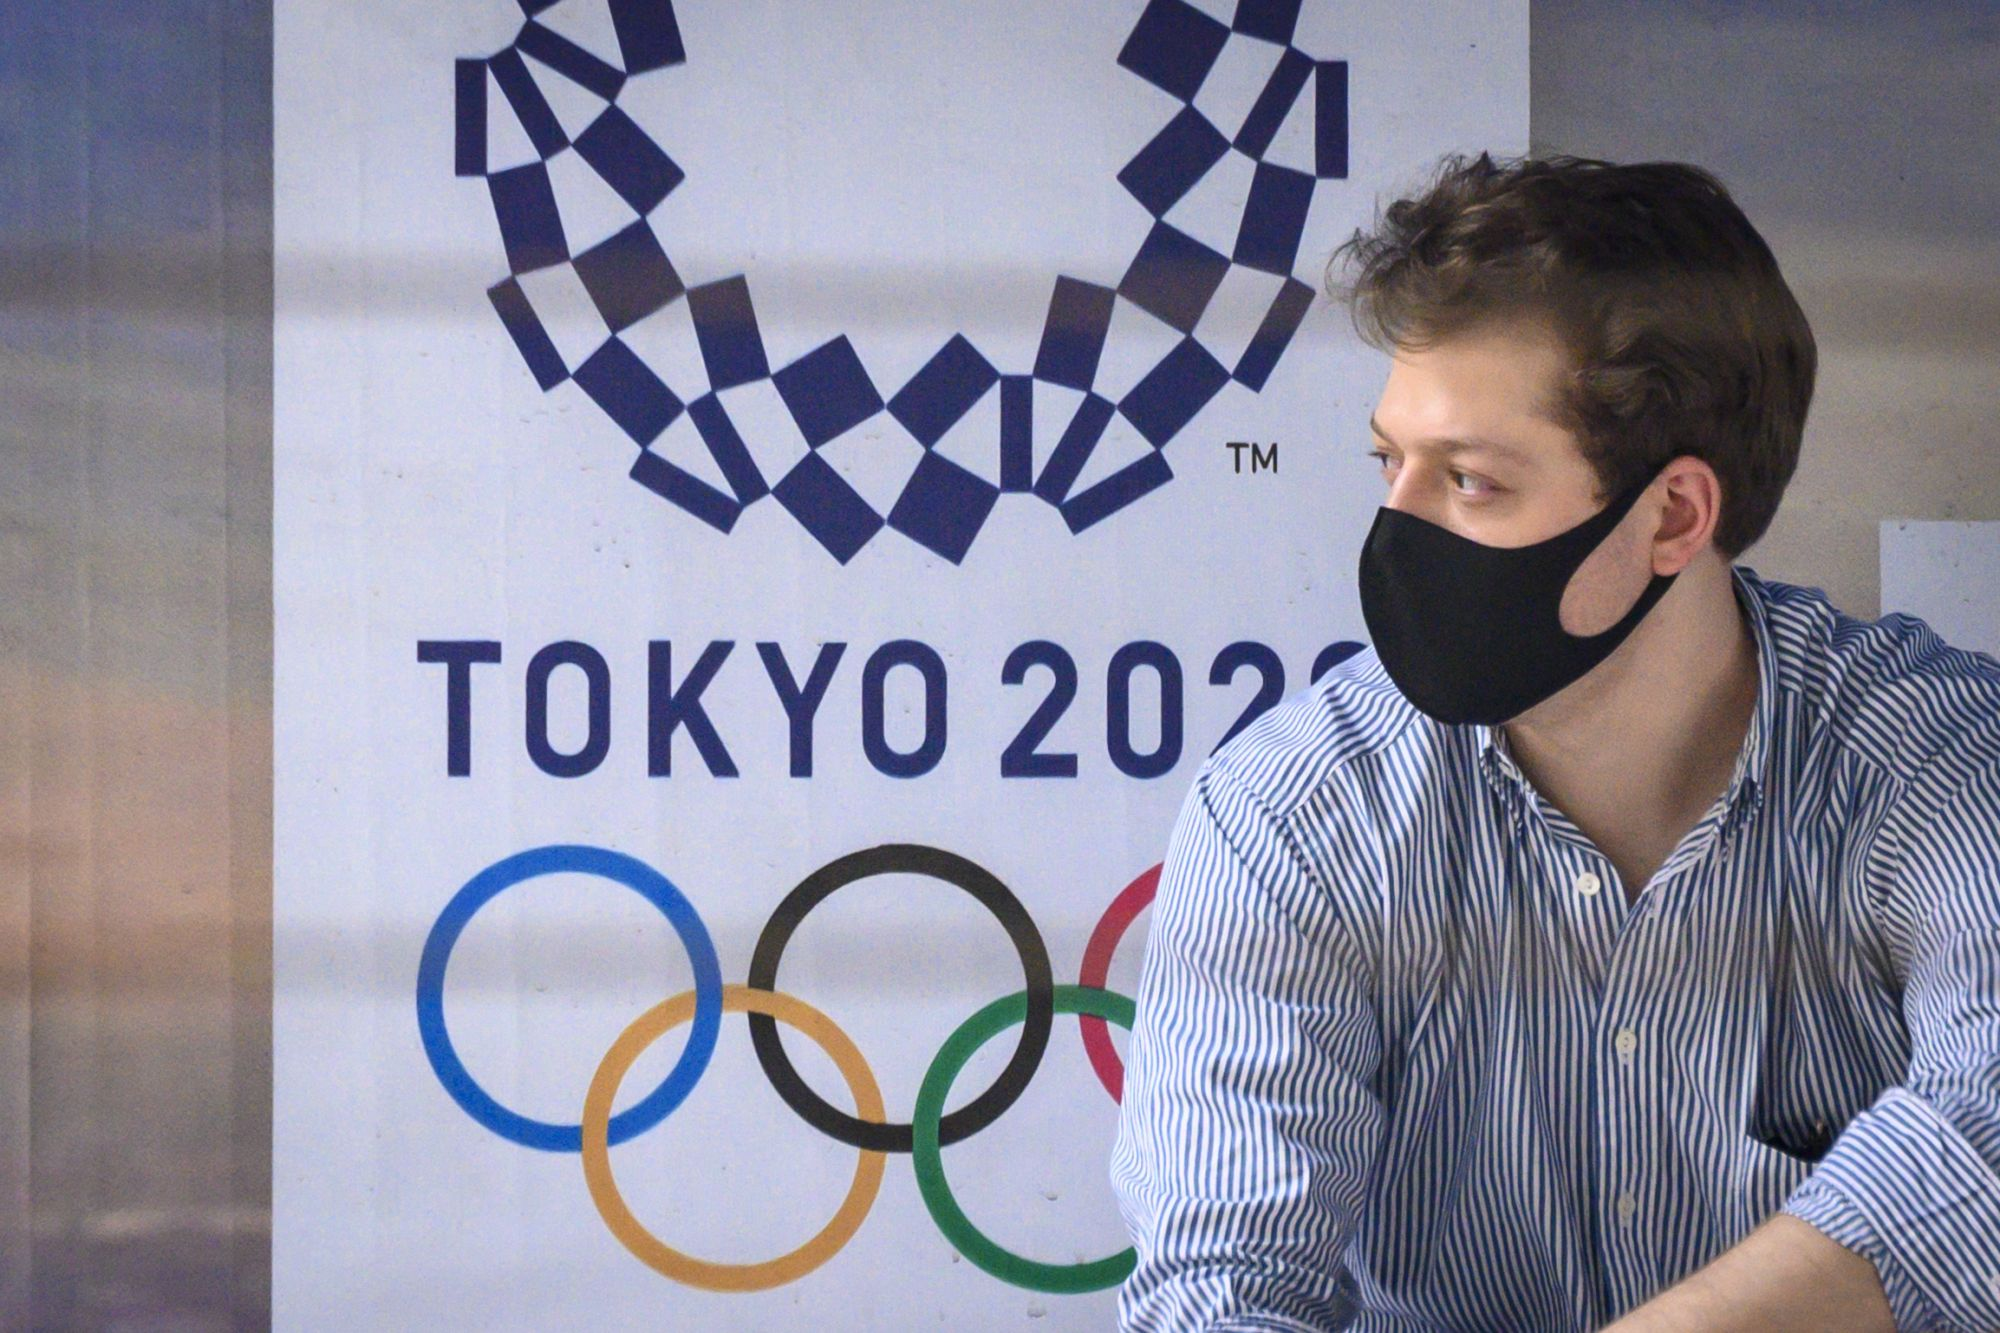 A man wearing a facemask, amid concerns over the spread of the COVID-19 coronavirus, sits at a bus stop in front of a Tokyo 2020 Olympics advertisement in Bangkok on March 16, 2020. (Photo by Mladen ANTONOV / AFP)